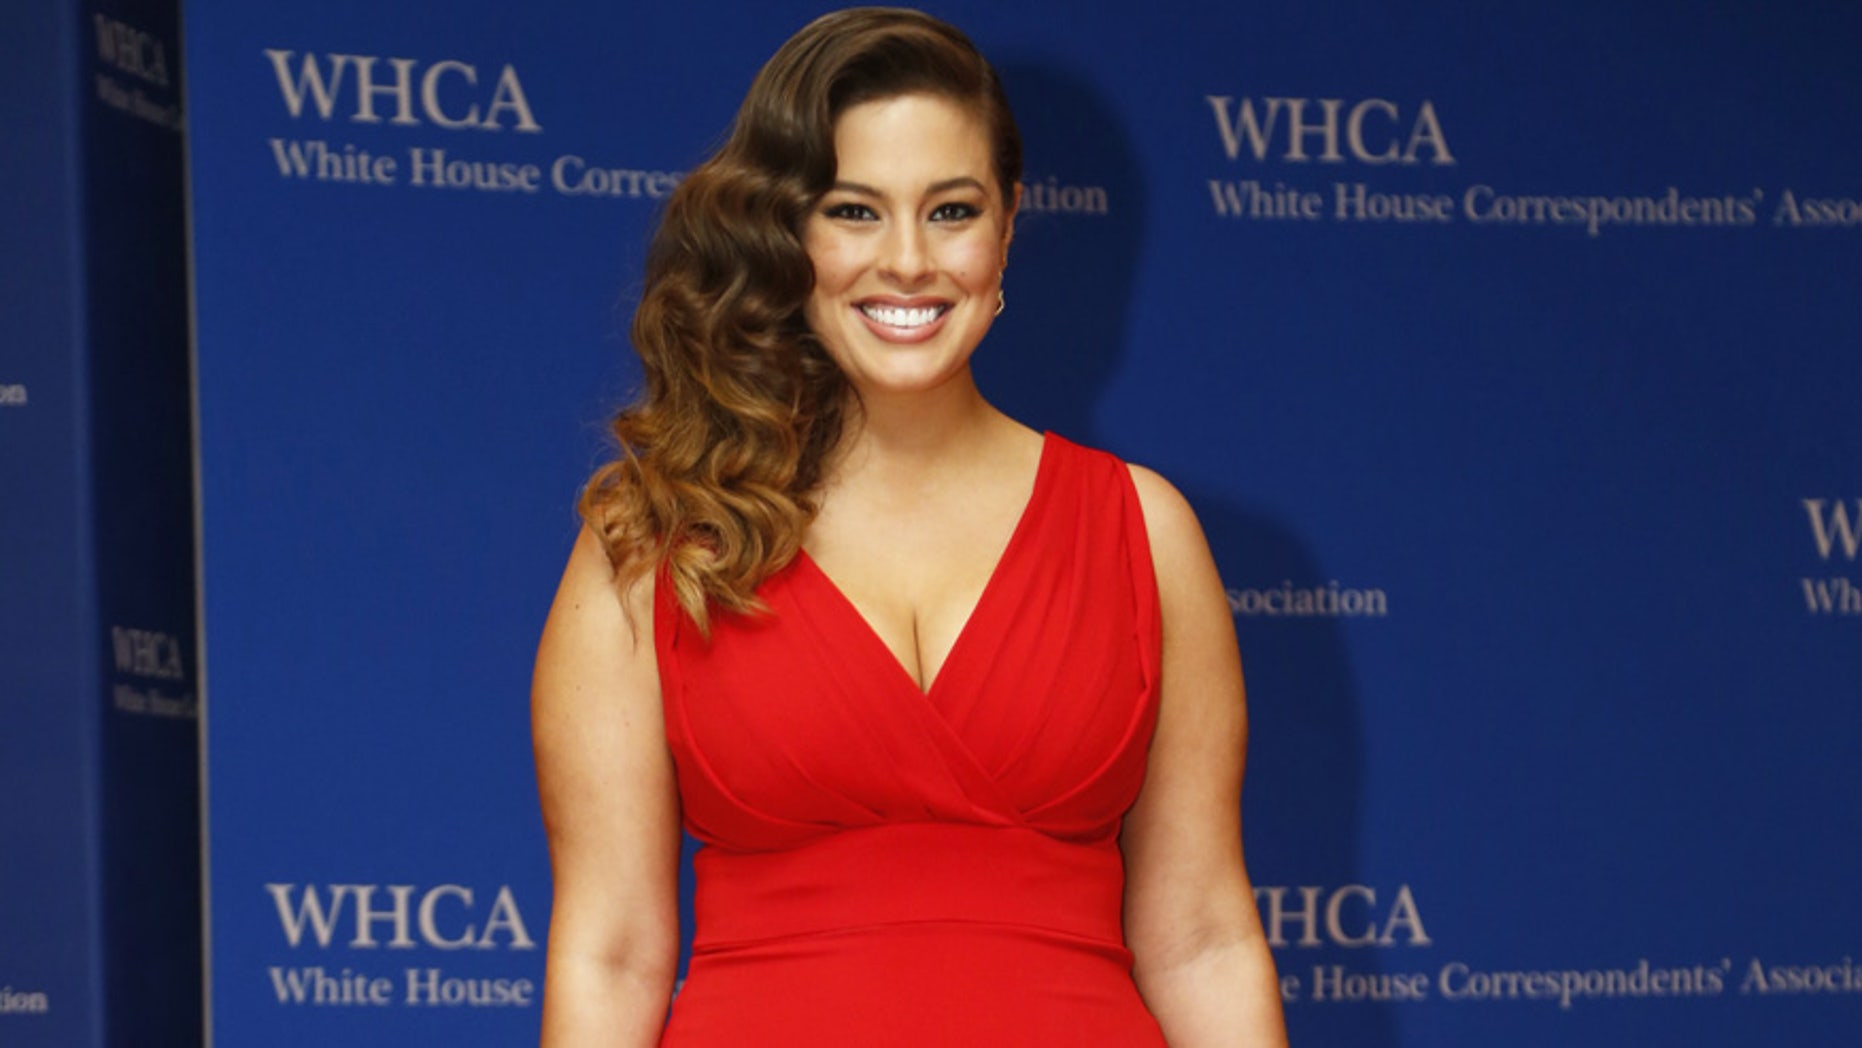 Model Ashley Graham arrives on the red carpet for the annual White House Correspondents Association Dinner in Washington, U.S., April 30, 2016.